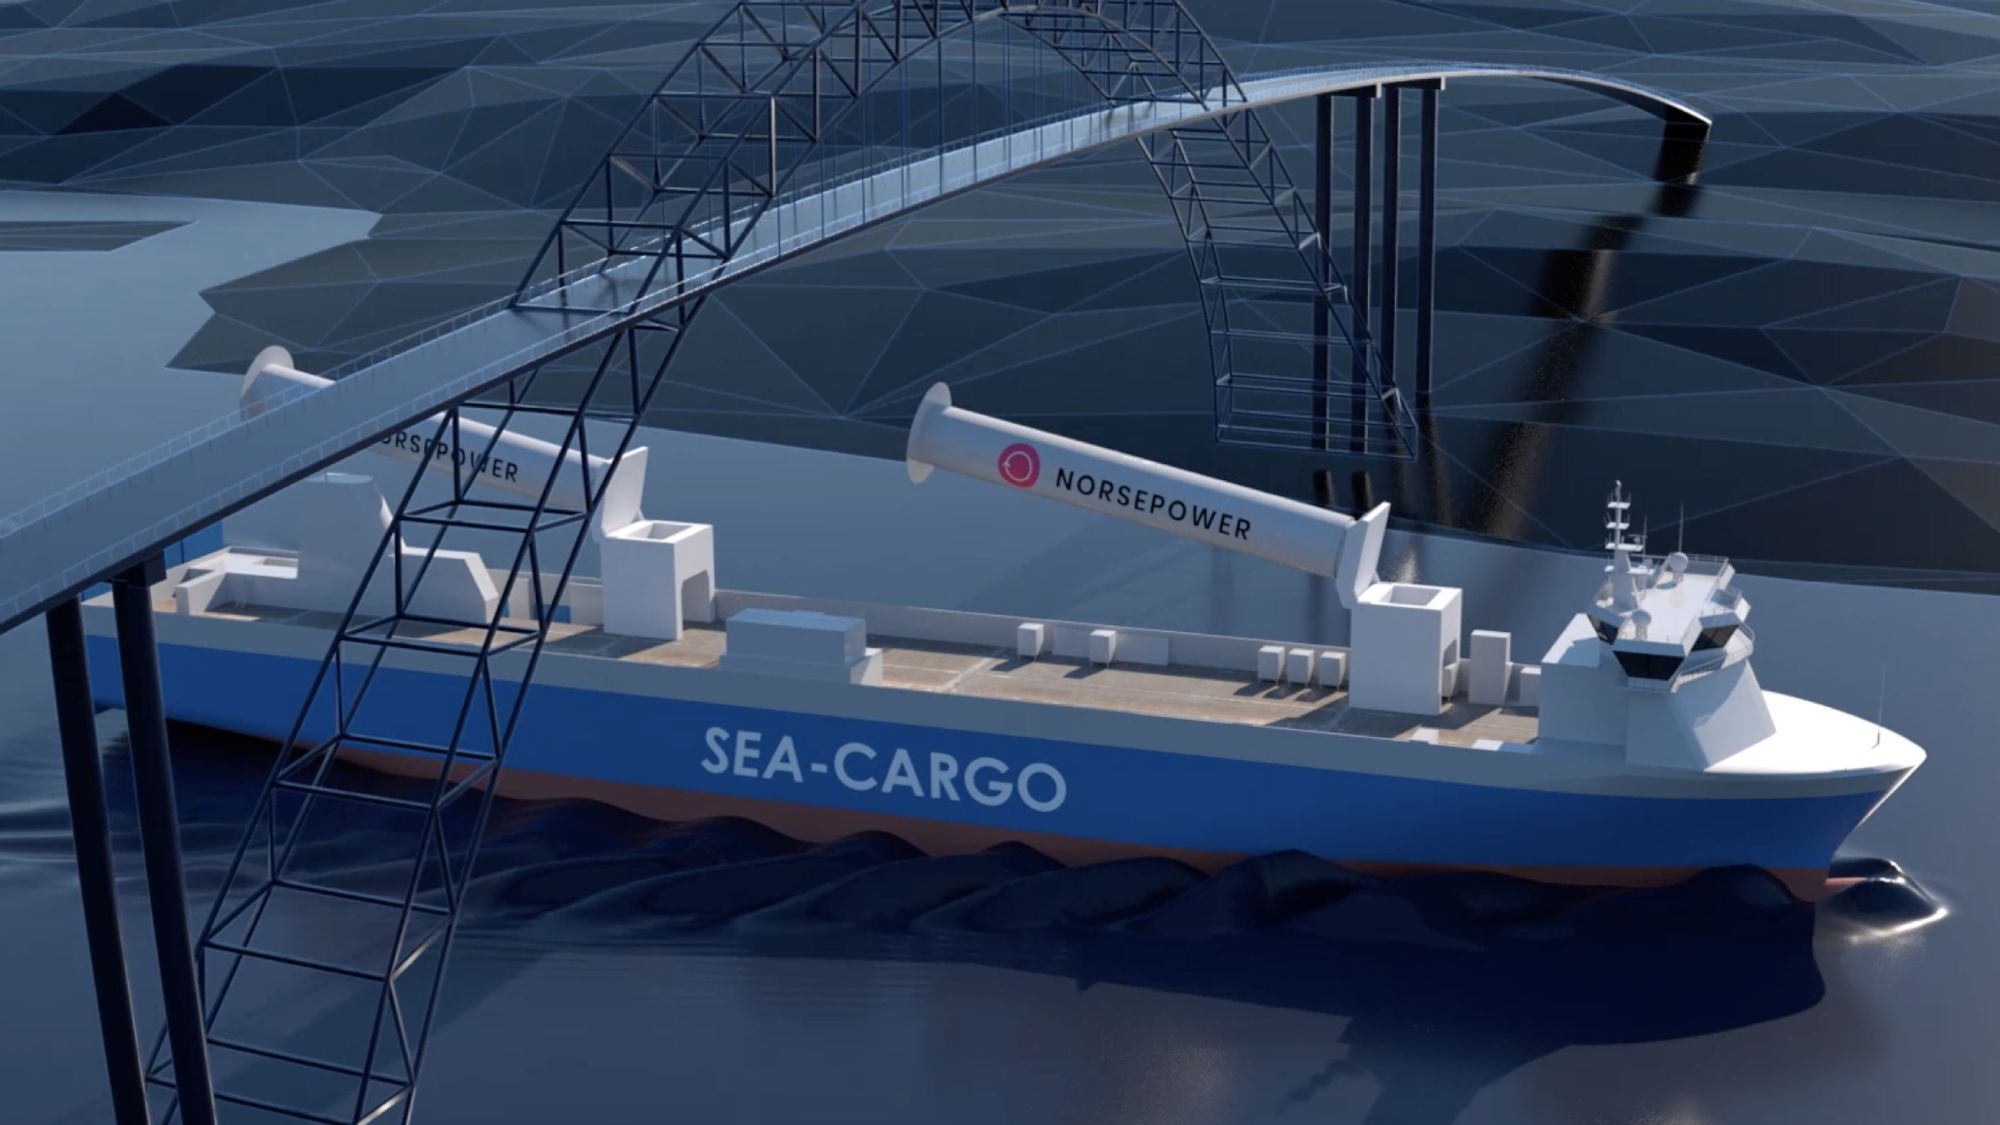 The Norsepower Rotor Sail Solution can reduce fuel costs by 20 per cent annually.